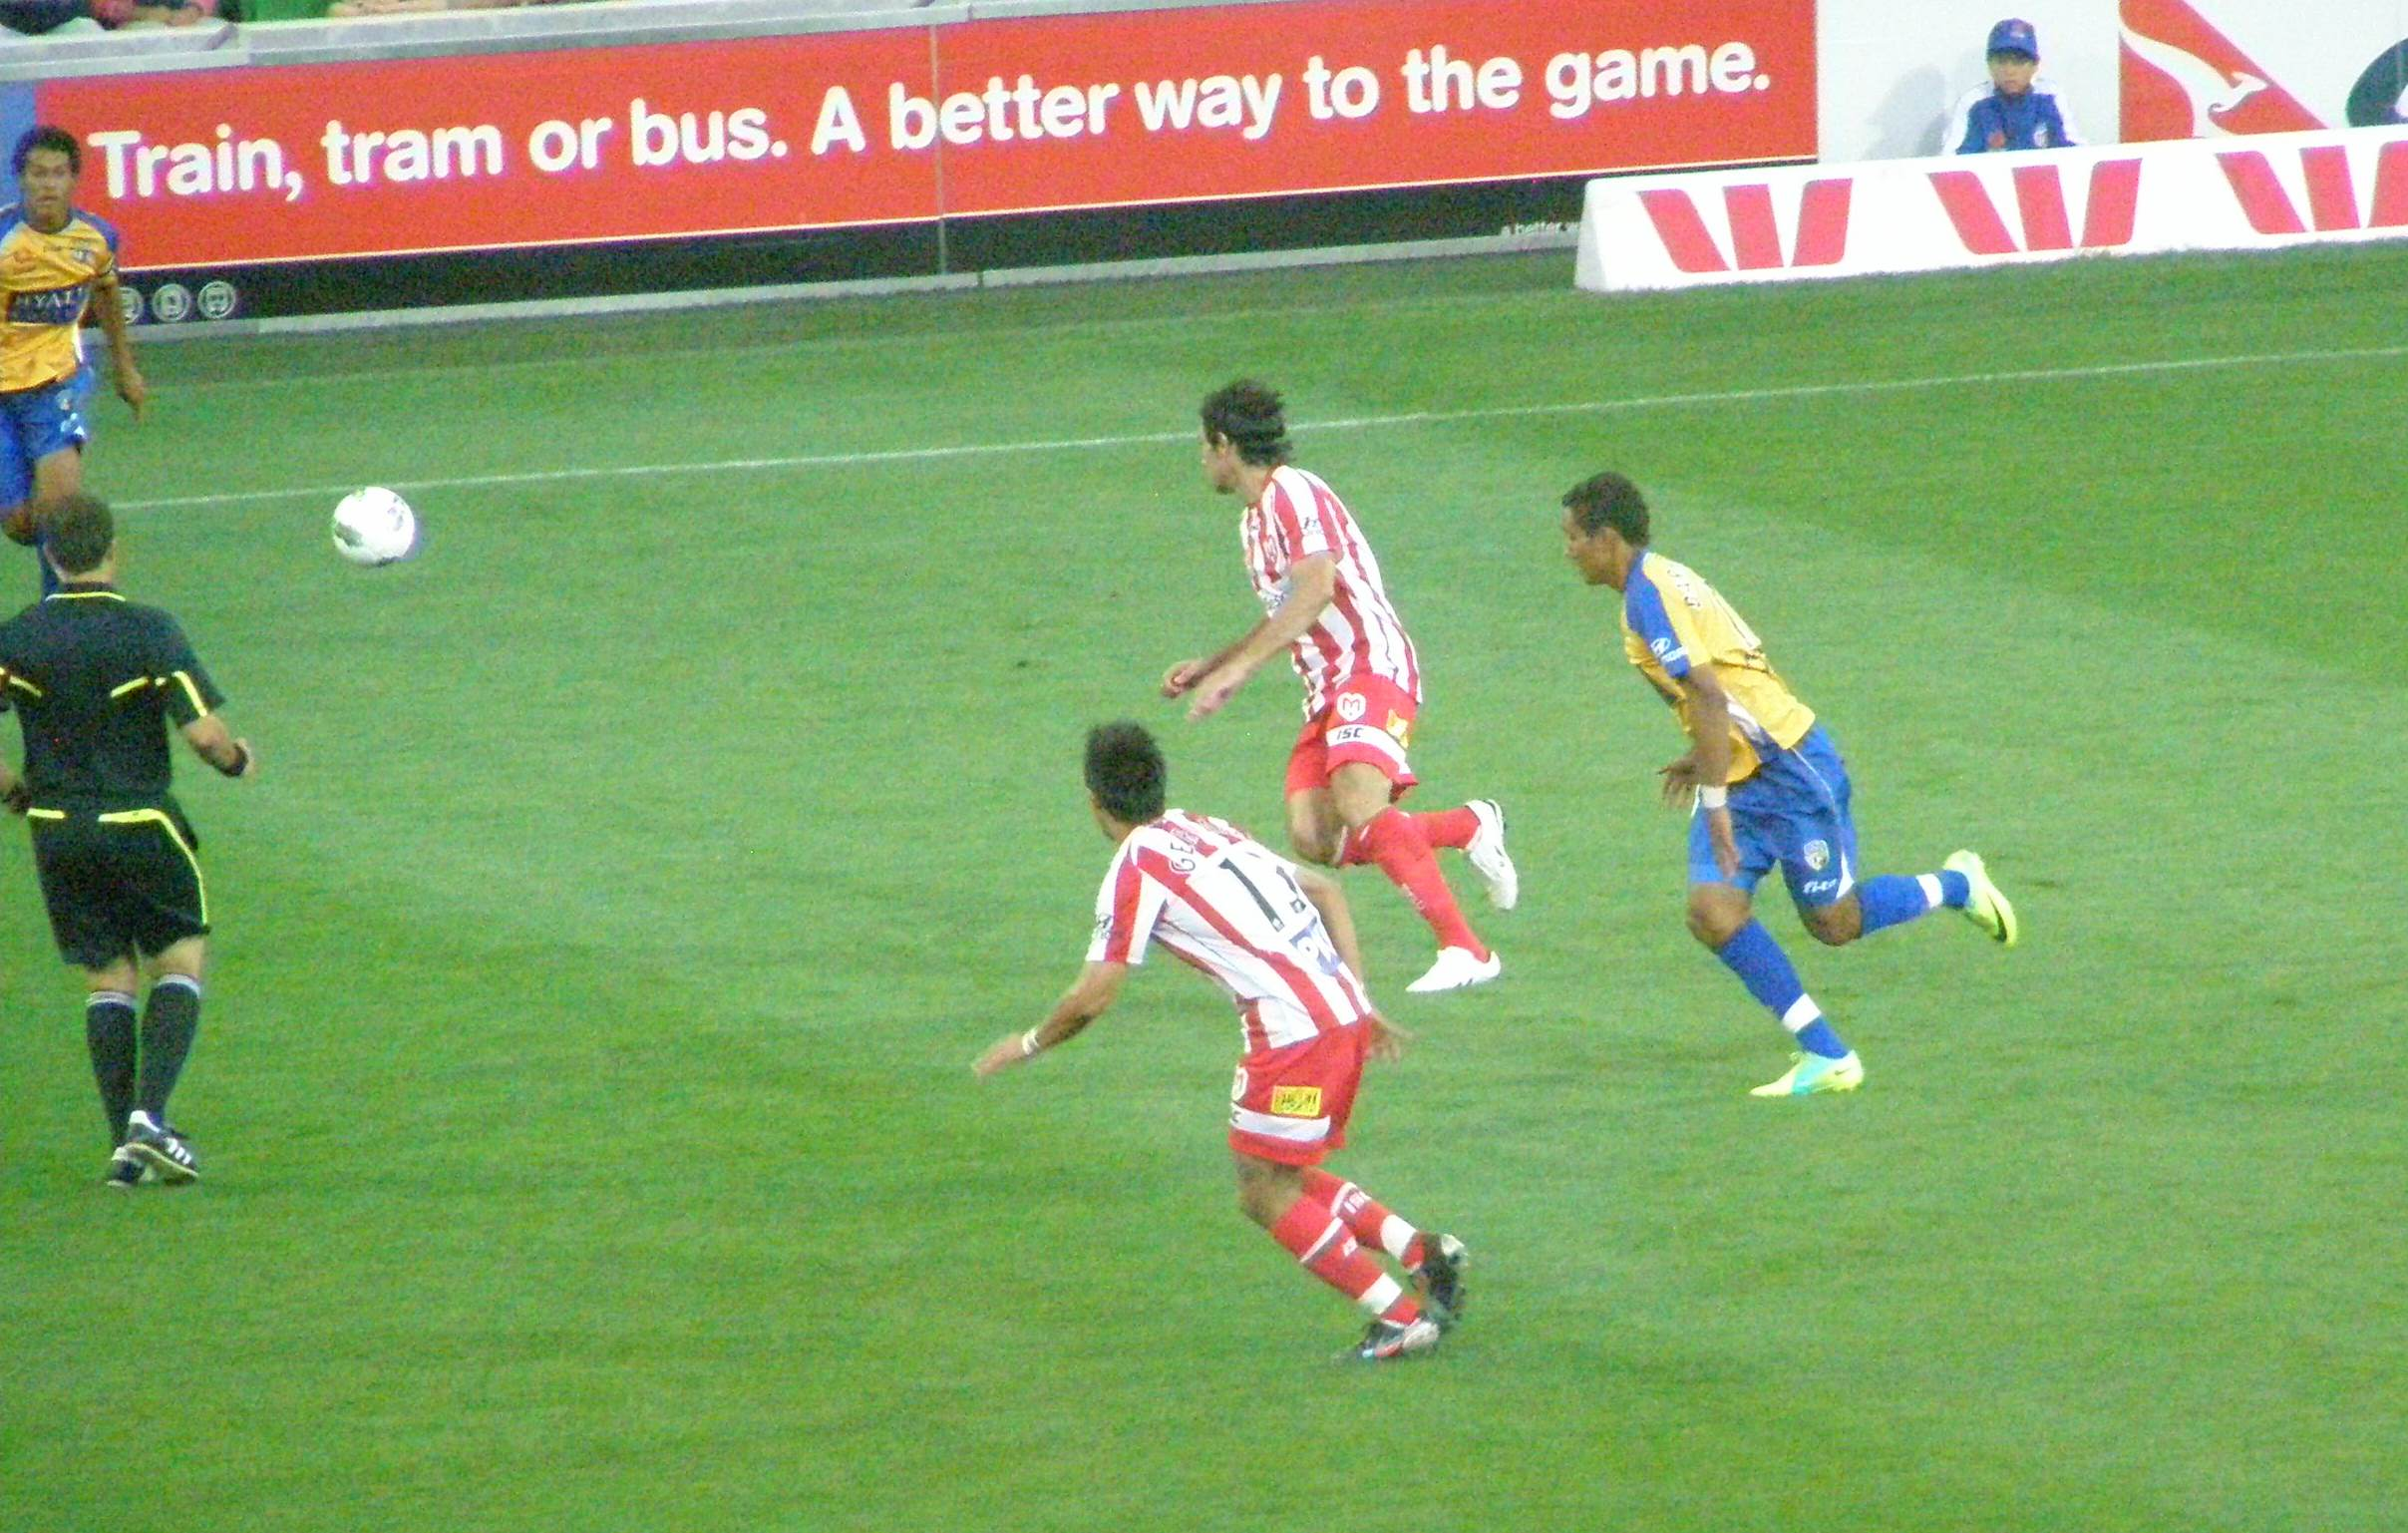 Babalj wins a tight one for Melbourne Heart